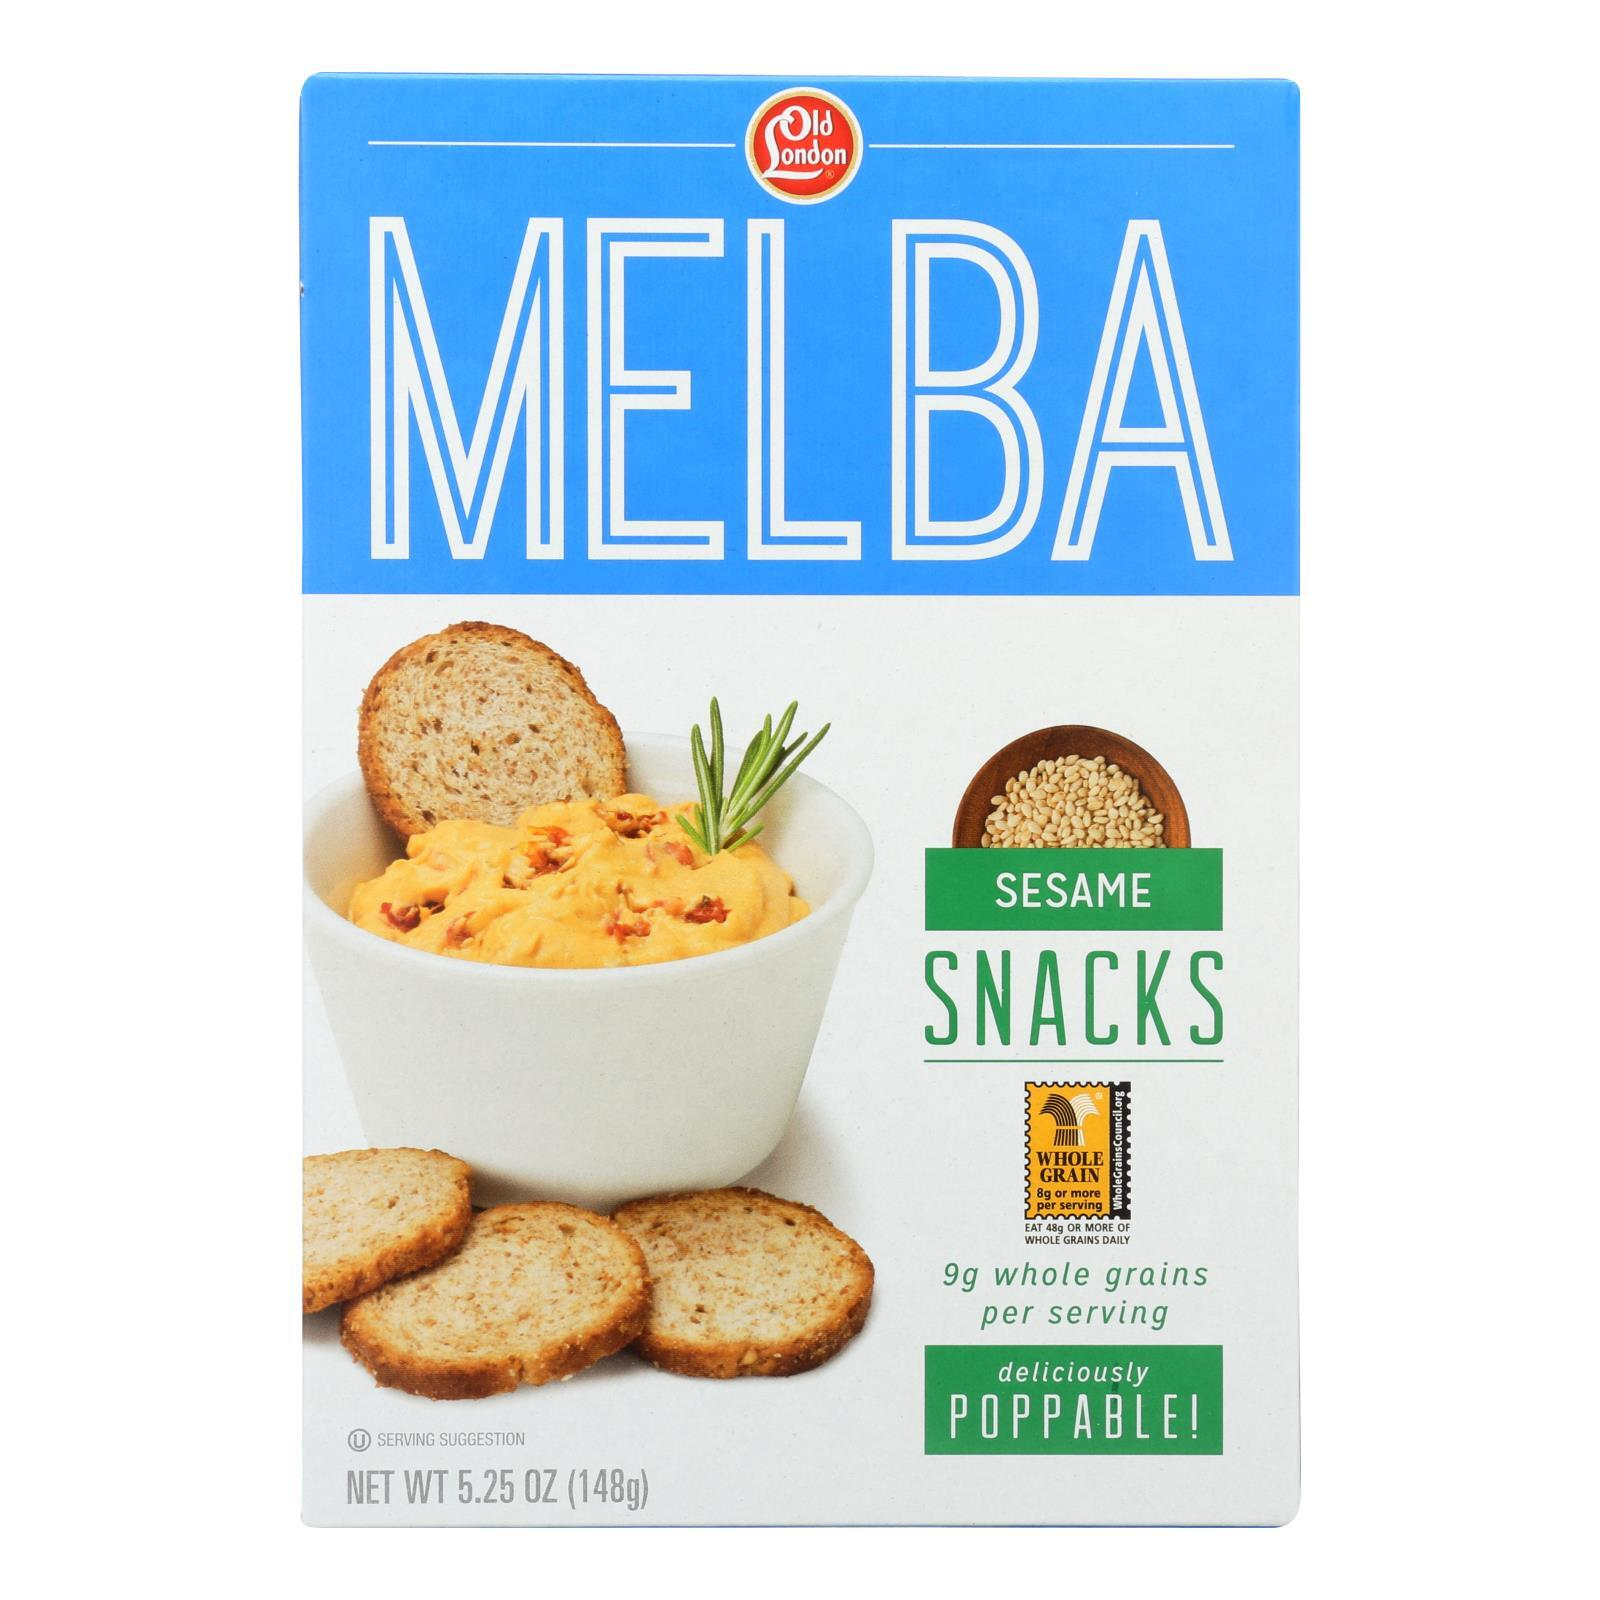 Old London Melba Snacks - Sesame - Case of 12 - 5.25 oz.